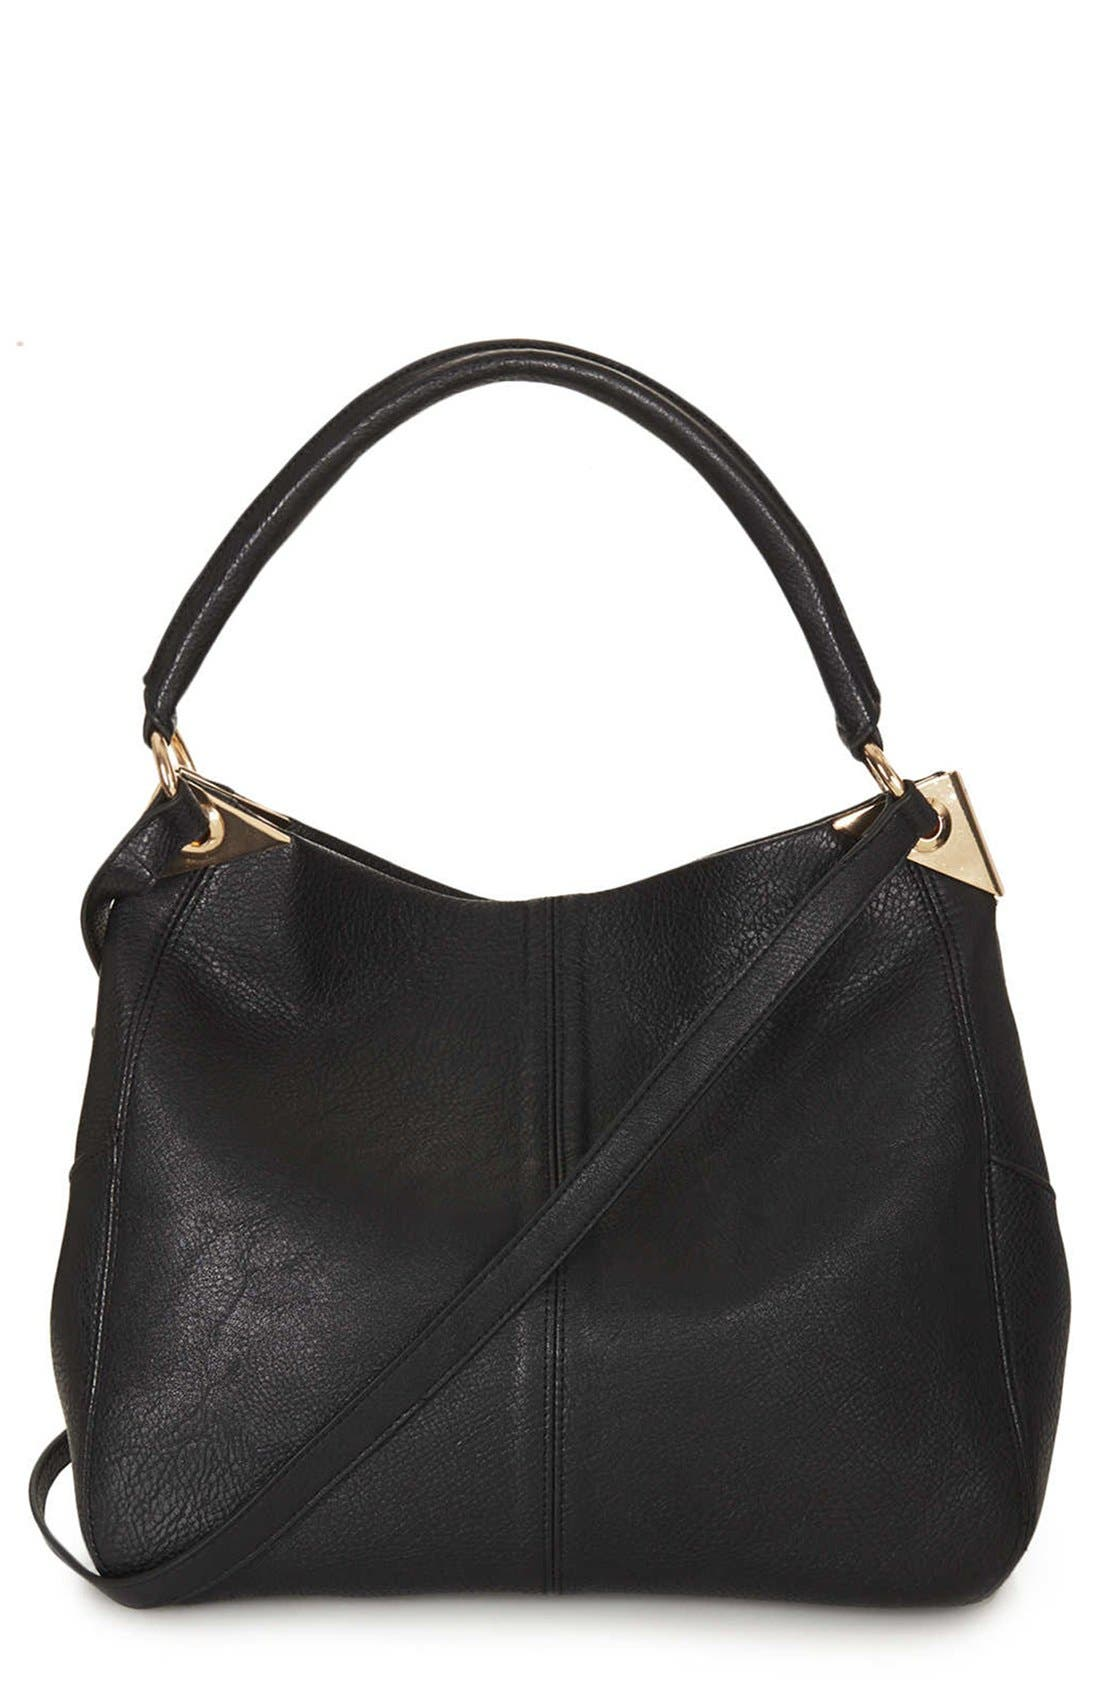 Main Image - Topshop Hinged Hobo Bag